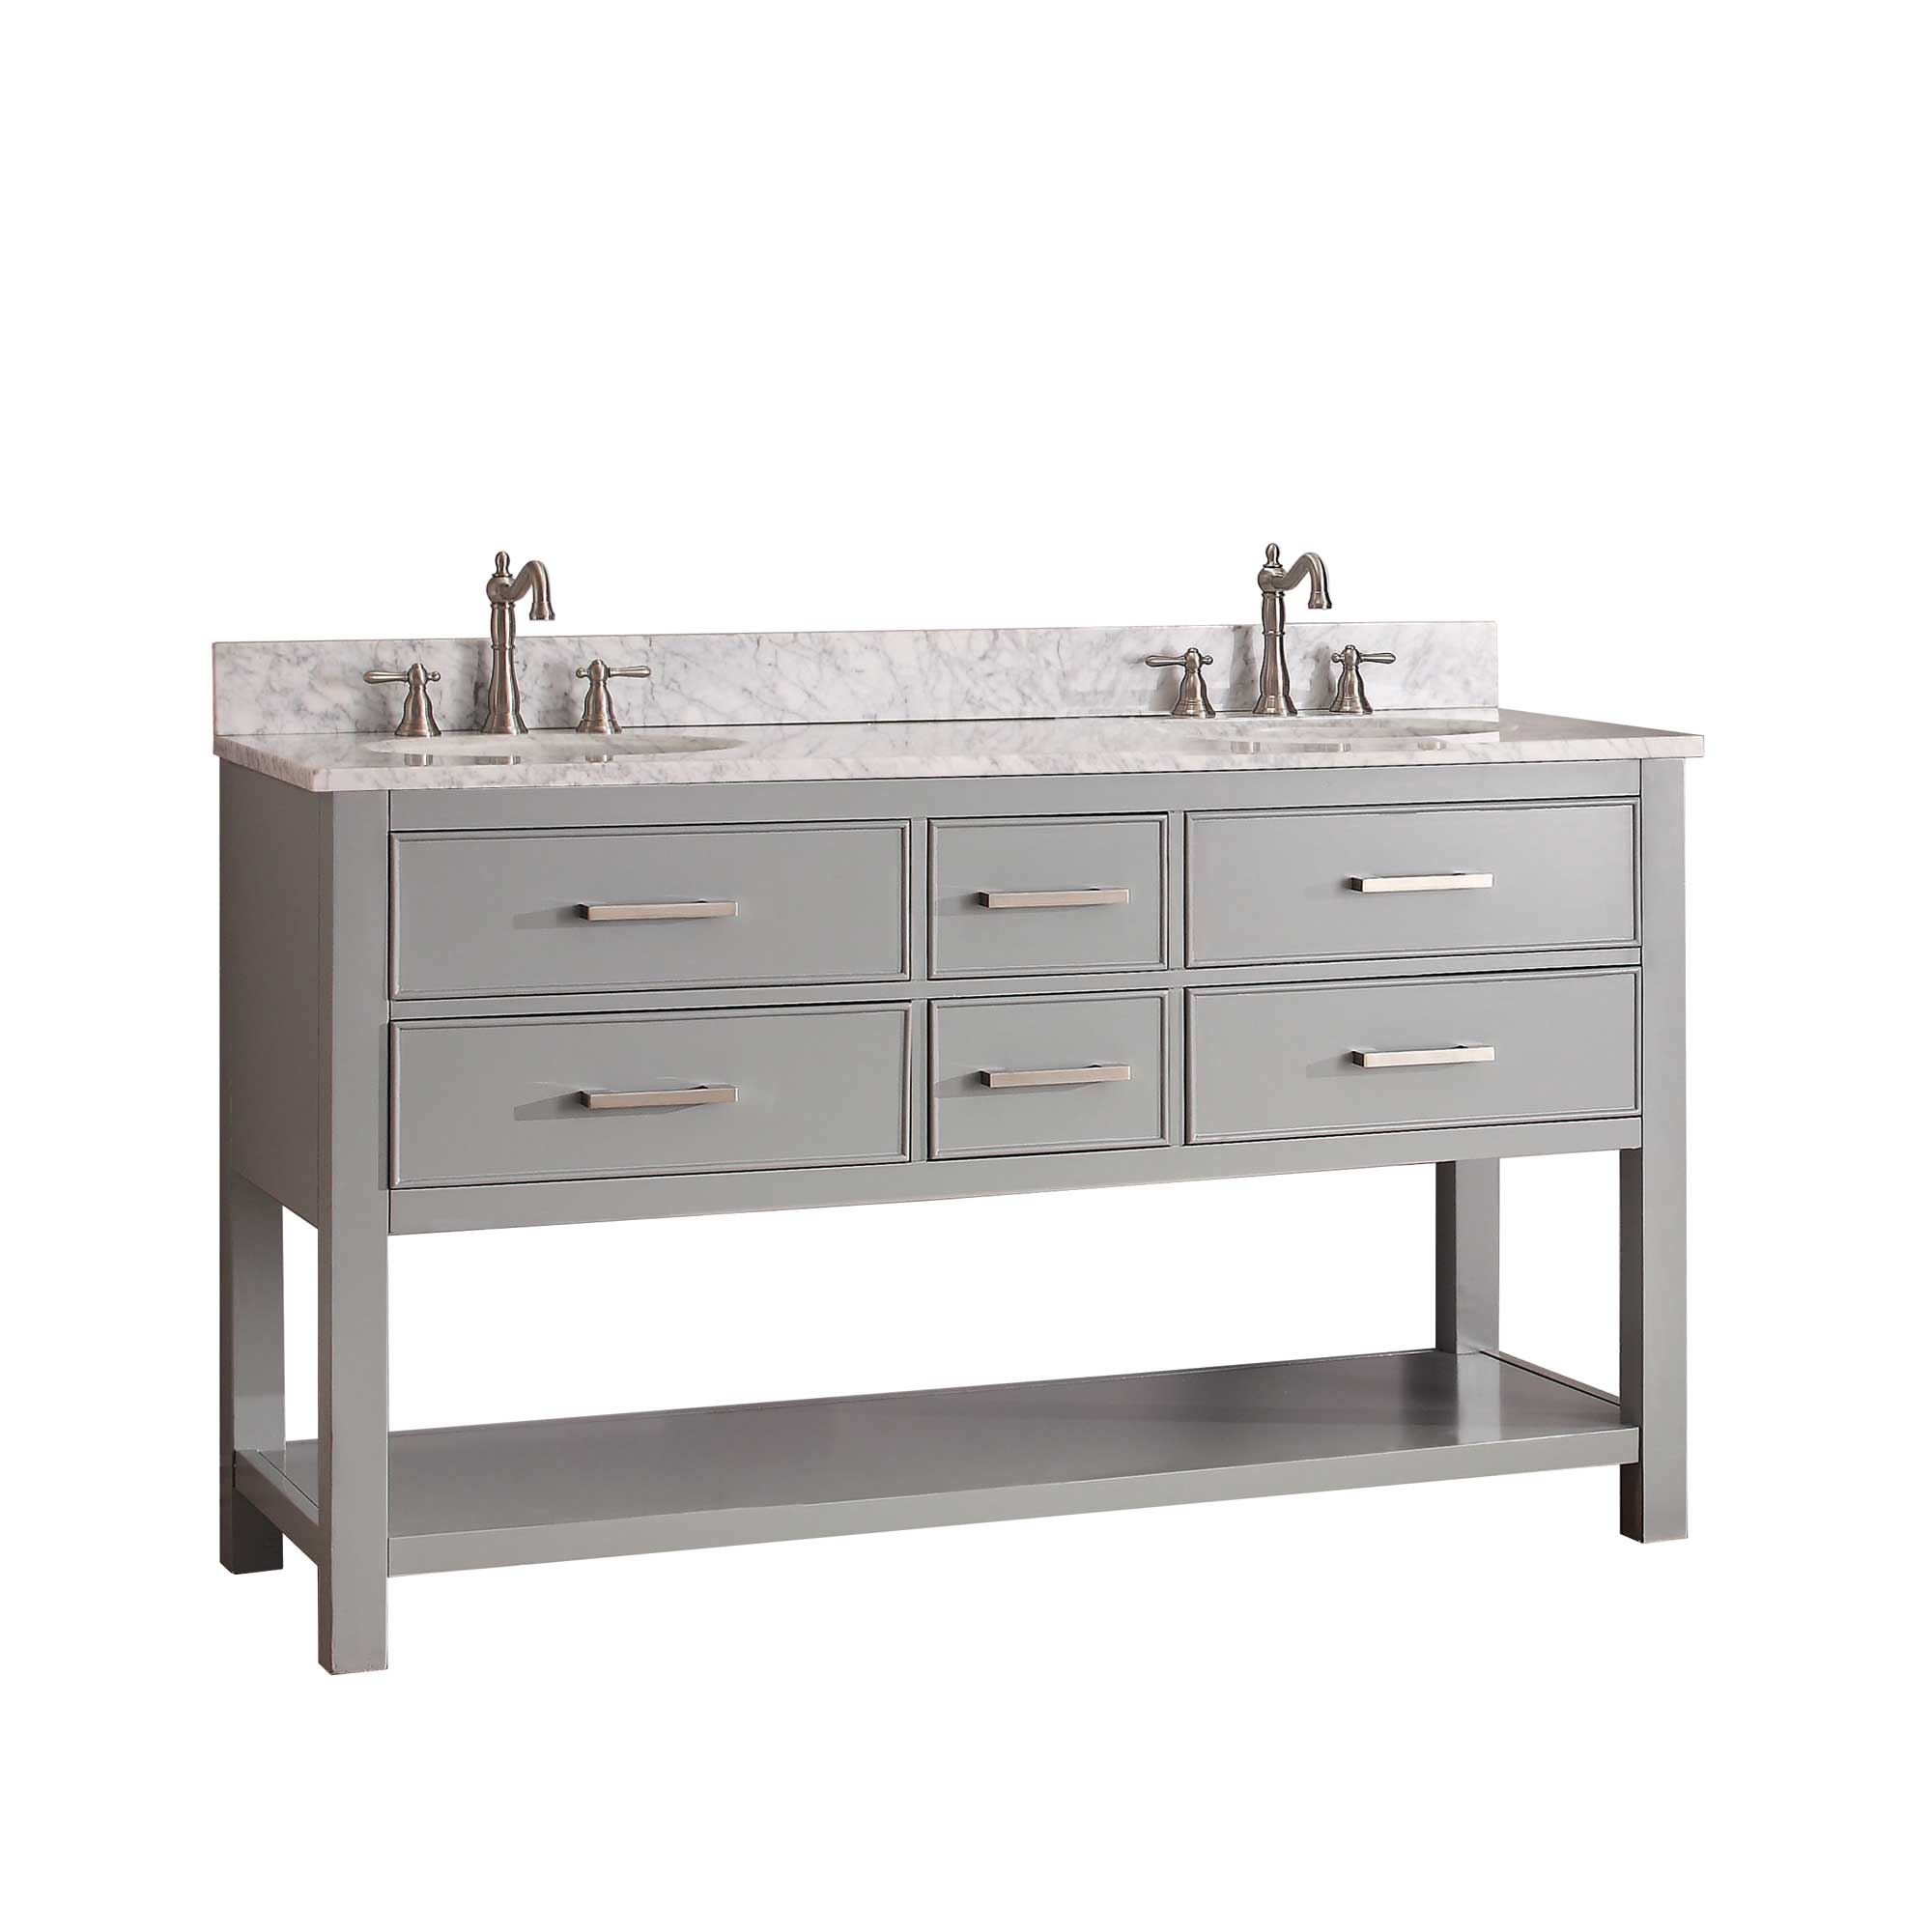 "61"" Begonia Single Bath Vanity - Chilled Gray - Chilled Gray with Carrara Chilled Gray Marble Top"